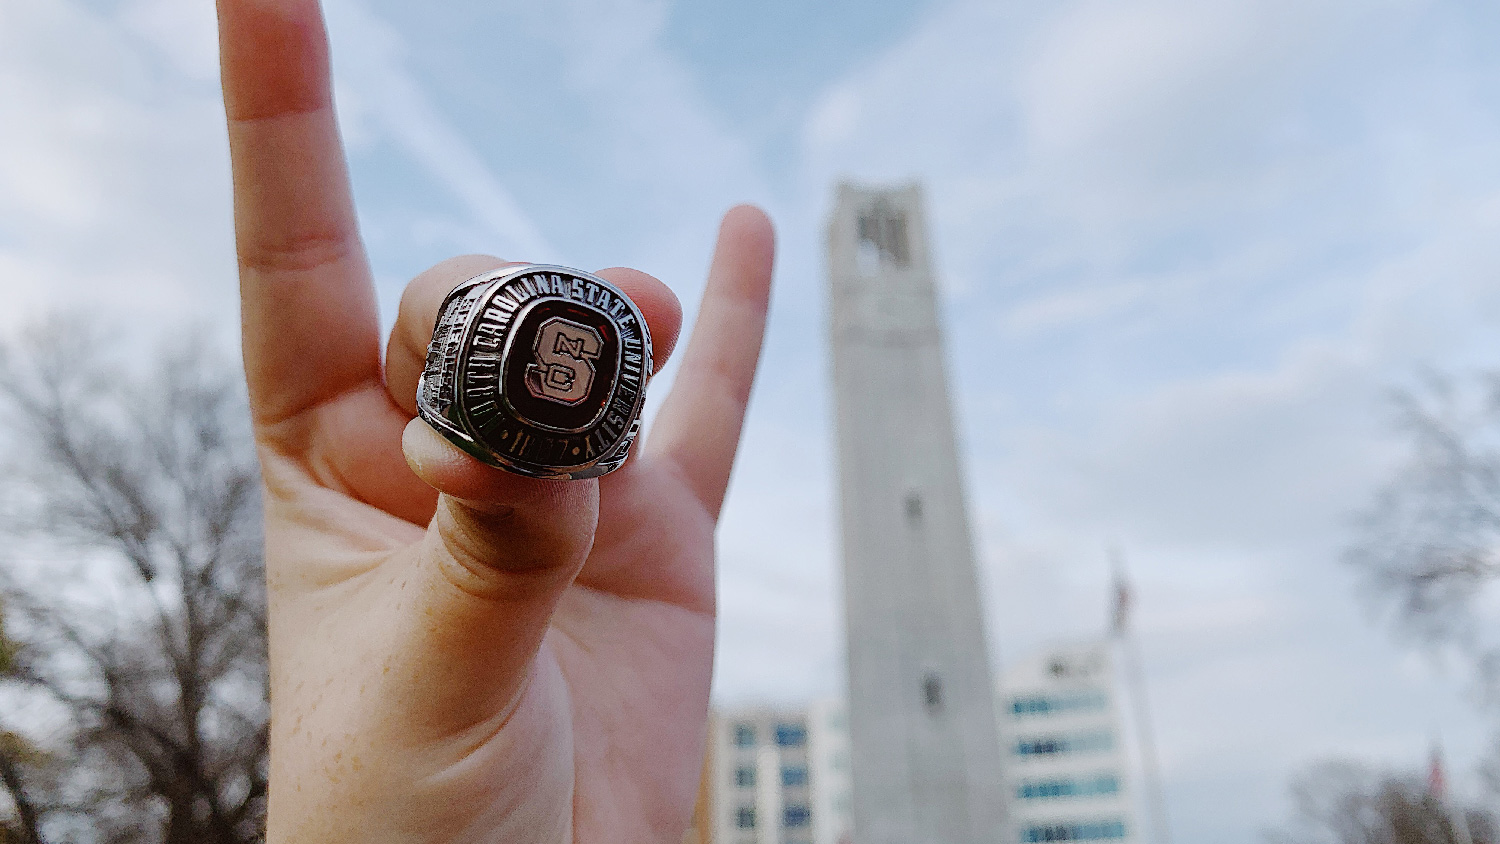 NC State class ring in front of the belltower